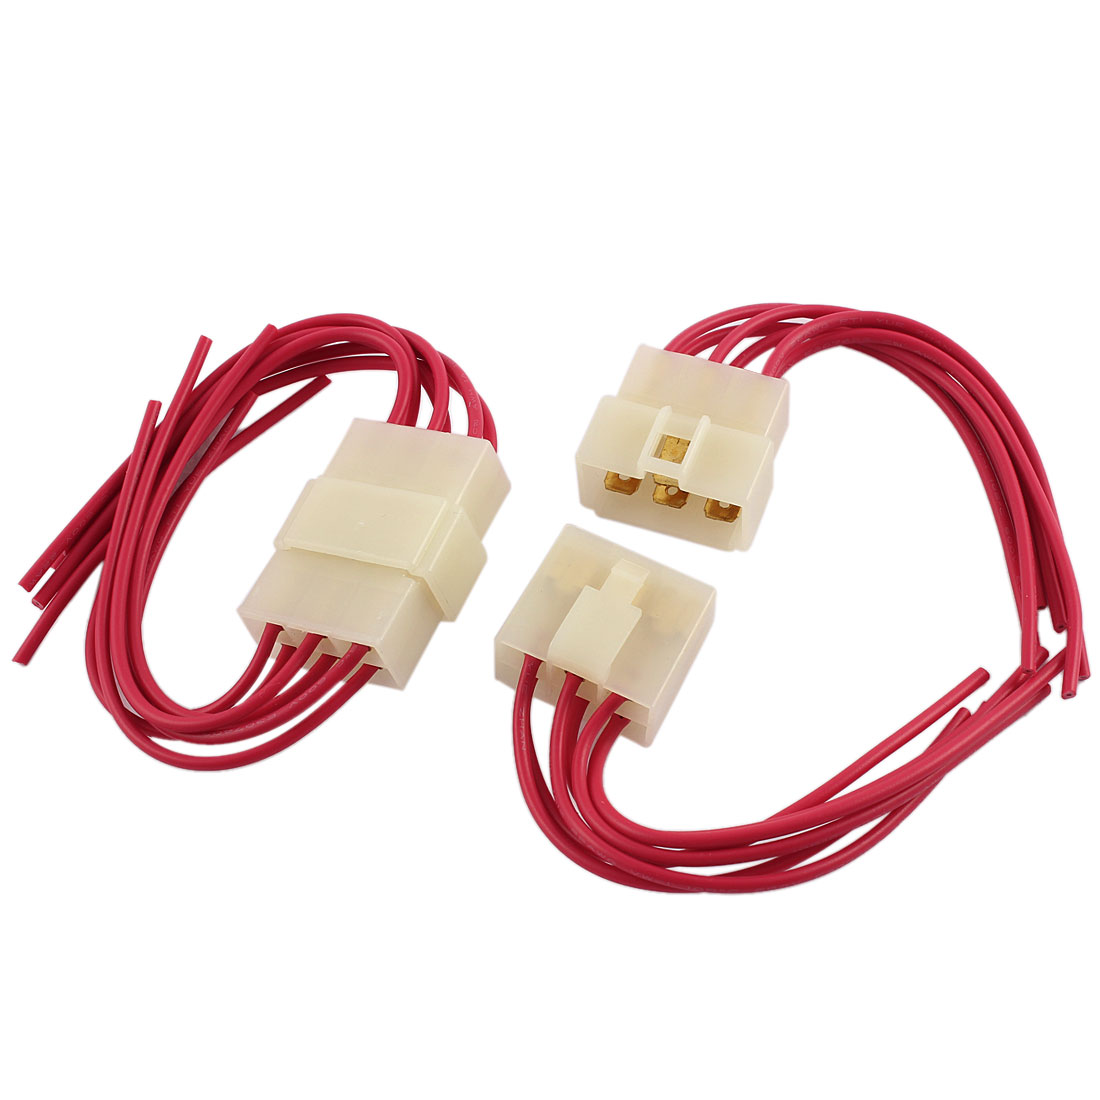 small resolution of 2 pcs car audio radio stereo wiring harness 6 pin wire adapter connectors